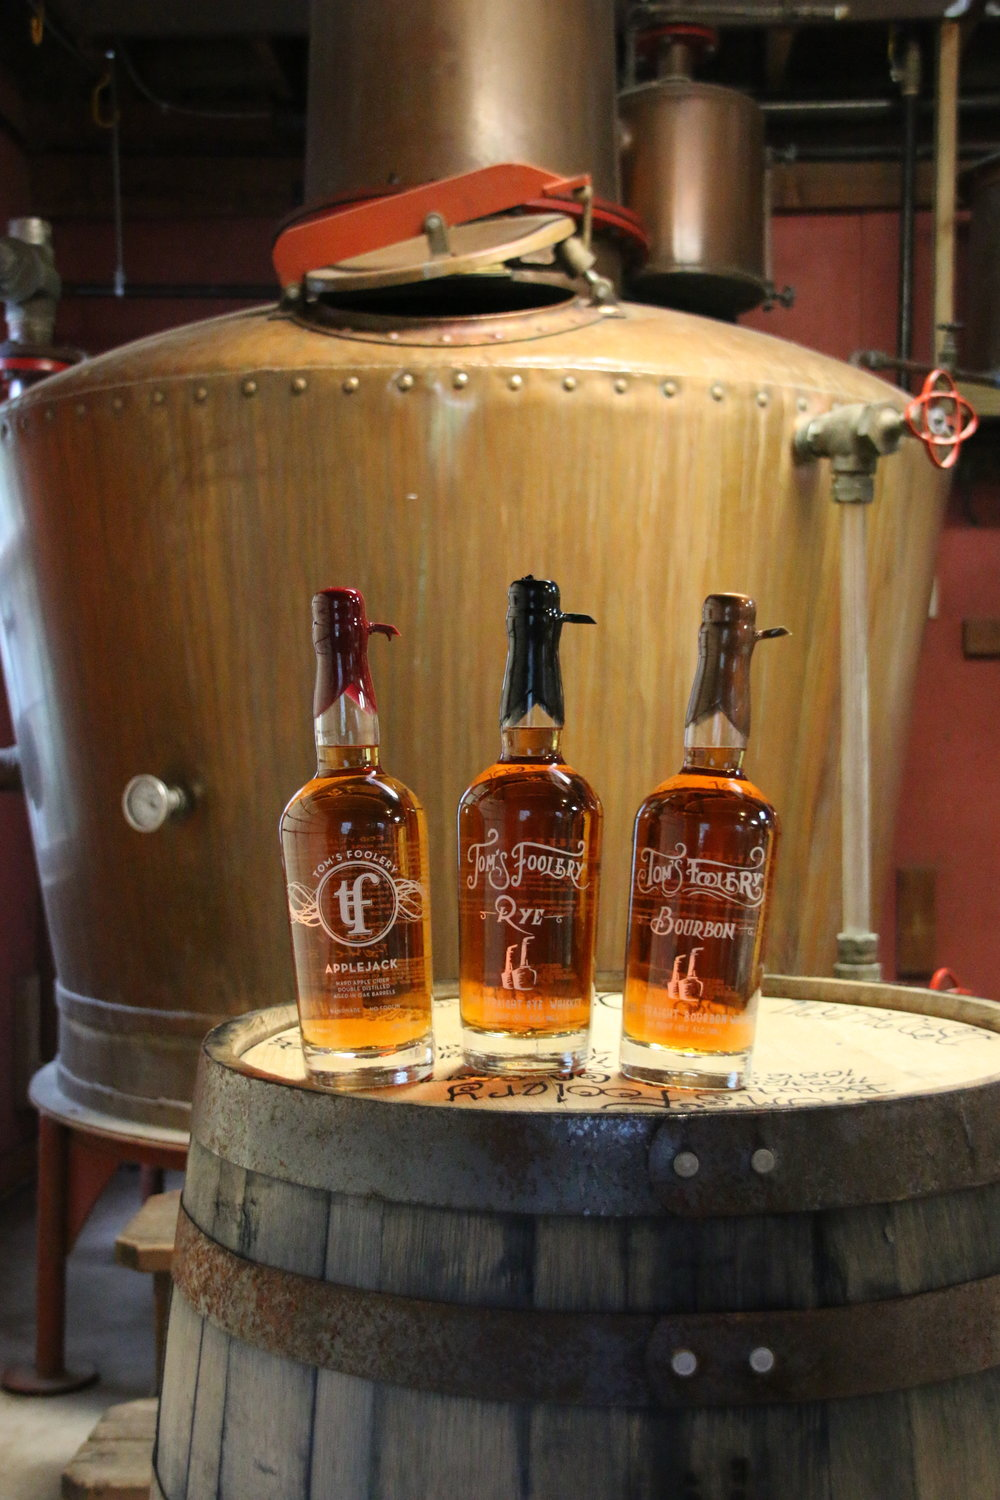 Bourbon, Rye and Applejack - Tom's Foolery began as a hobby: a barn, a still, and a family with passion for quality and tradition. Today, we are a traditional American distillery, where we make great products from scratch and share the experience with friends. Our focus is on Applejack, Bourbon, and Rye Whiskey, pot-distilled in the heart of America's Snowbelt.